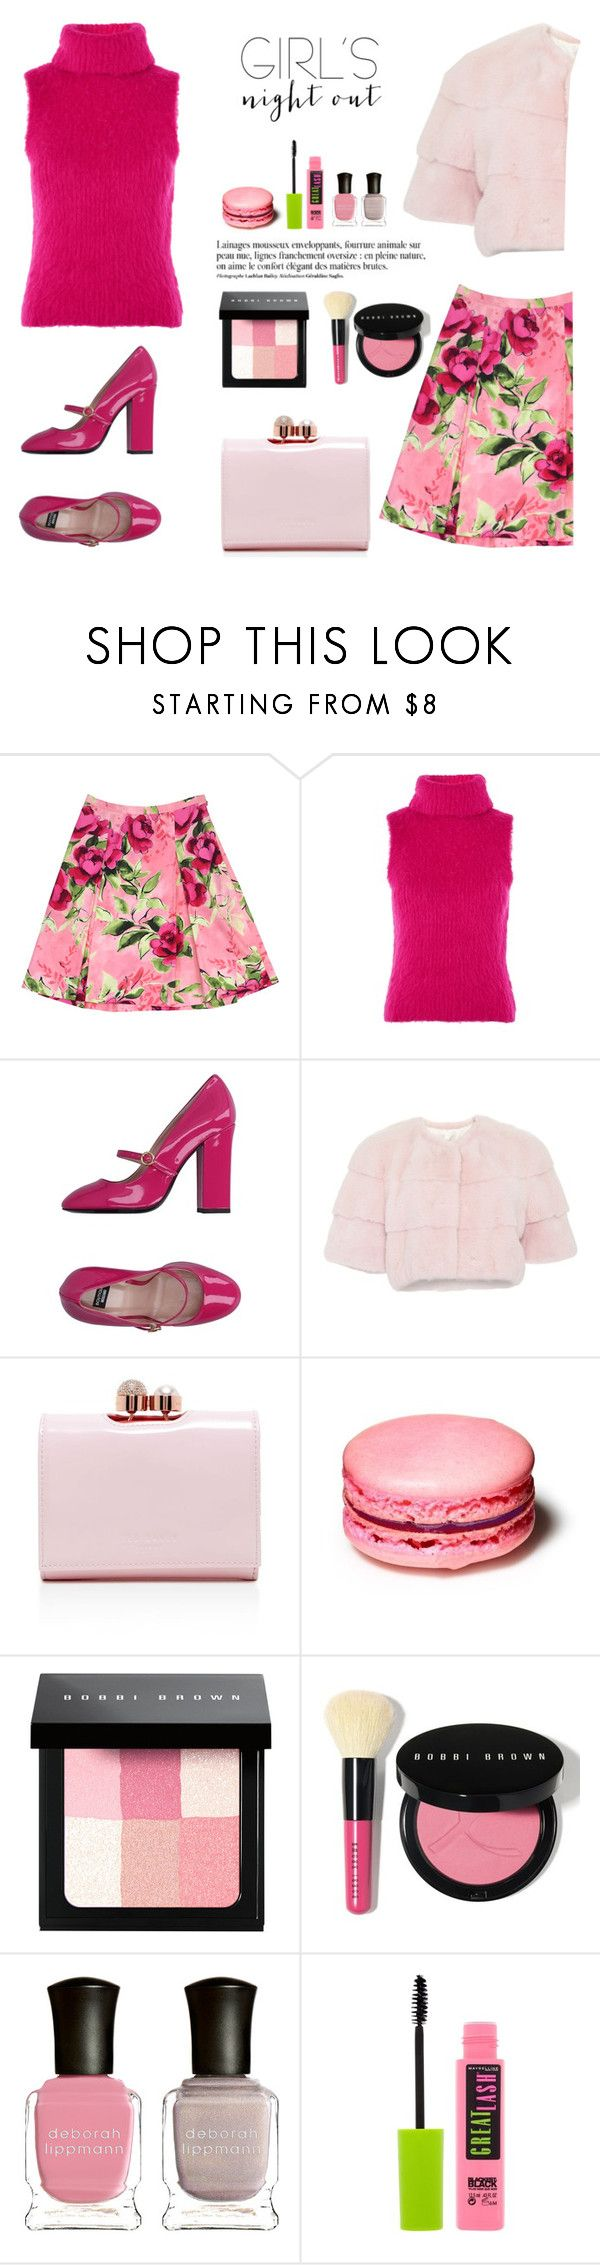 """Girls night out"" by gul07 ❤ liked on Polyvore featuring Love Moschino, Topshop, Boutique Moschino, Lilly e Violetta, Ted Baker, Anja, Bobbi Brown Cosmetics, Deborah Lippmann, Maybelline and girlsnight"